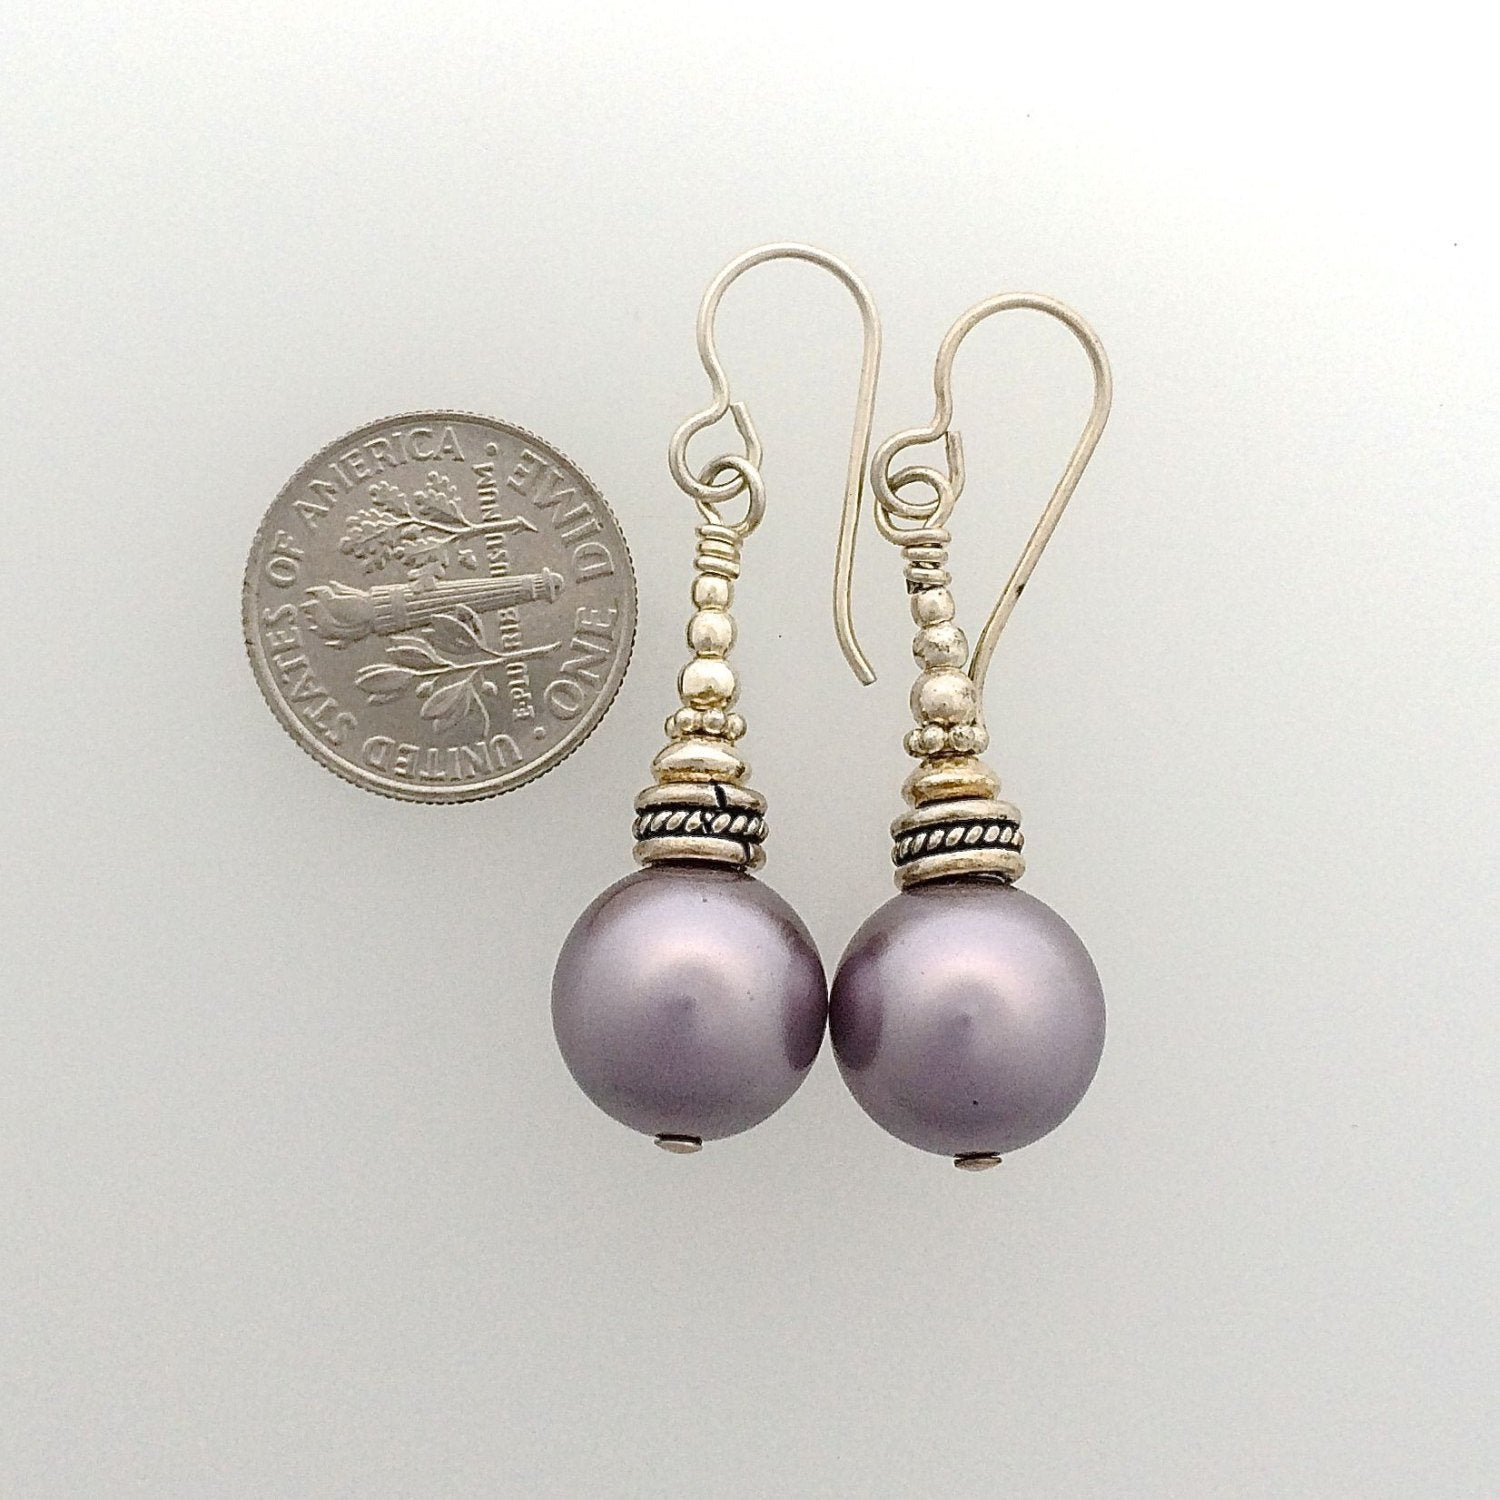 Swarovski Pearl Earrings in Sterling Silver